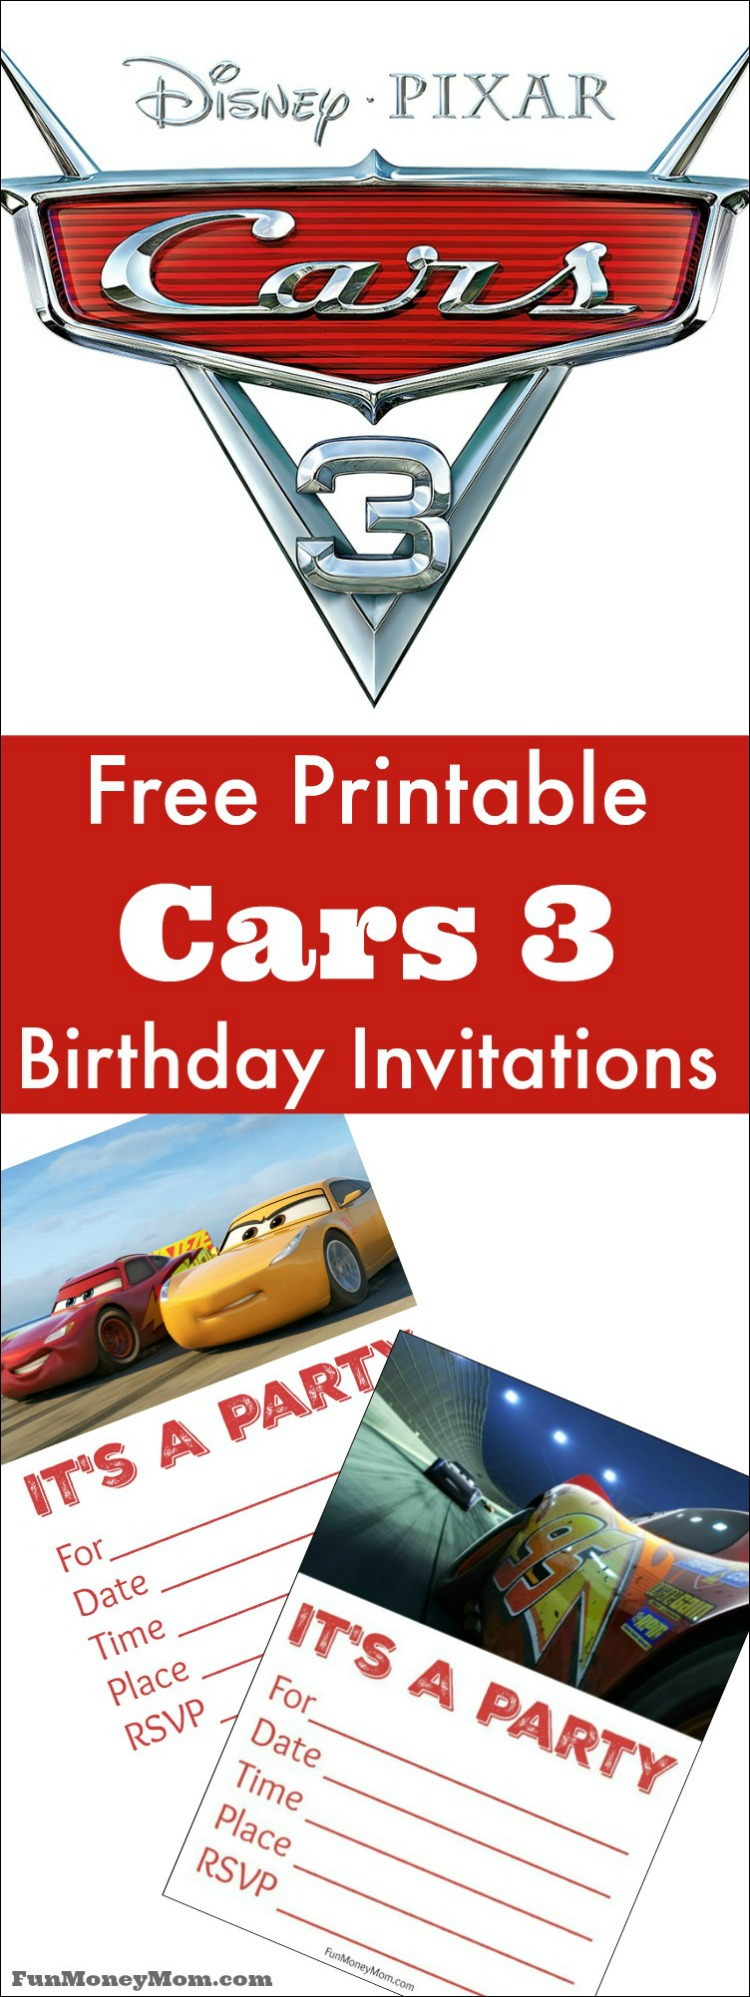 Are Your Kids Begging For A Cars 3 Birthday Party Why Not Start The Ball